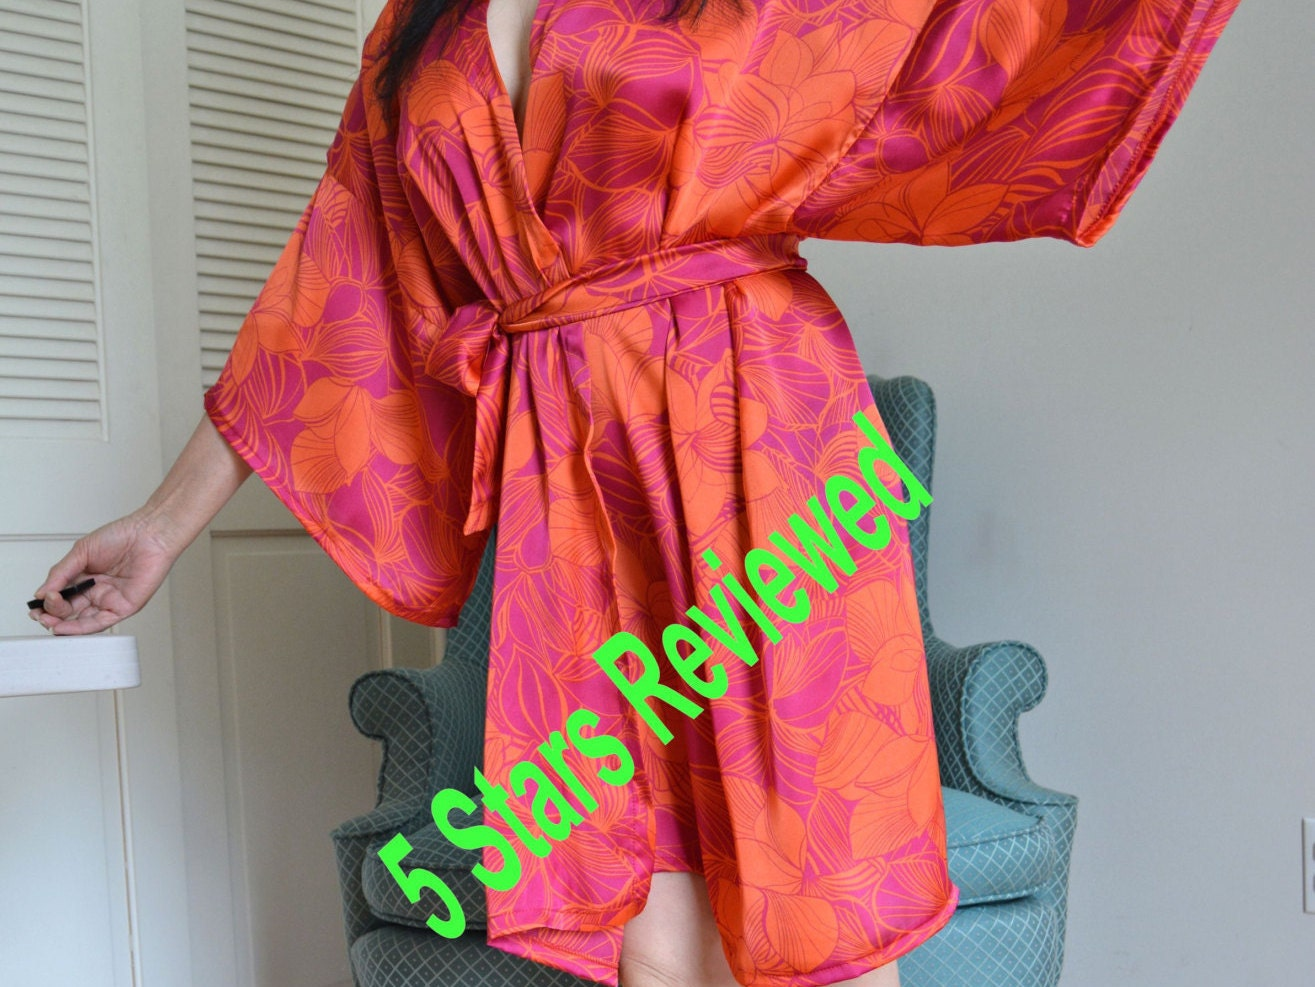 October Red robes Christmas robes Floral satin robe bridal